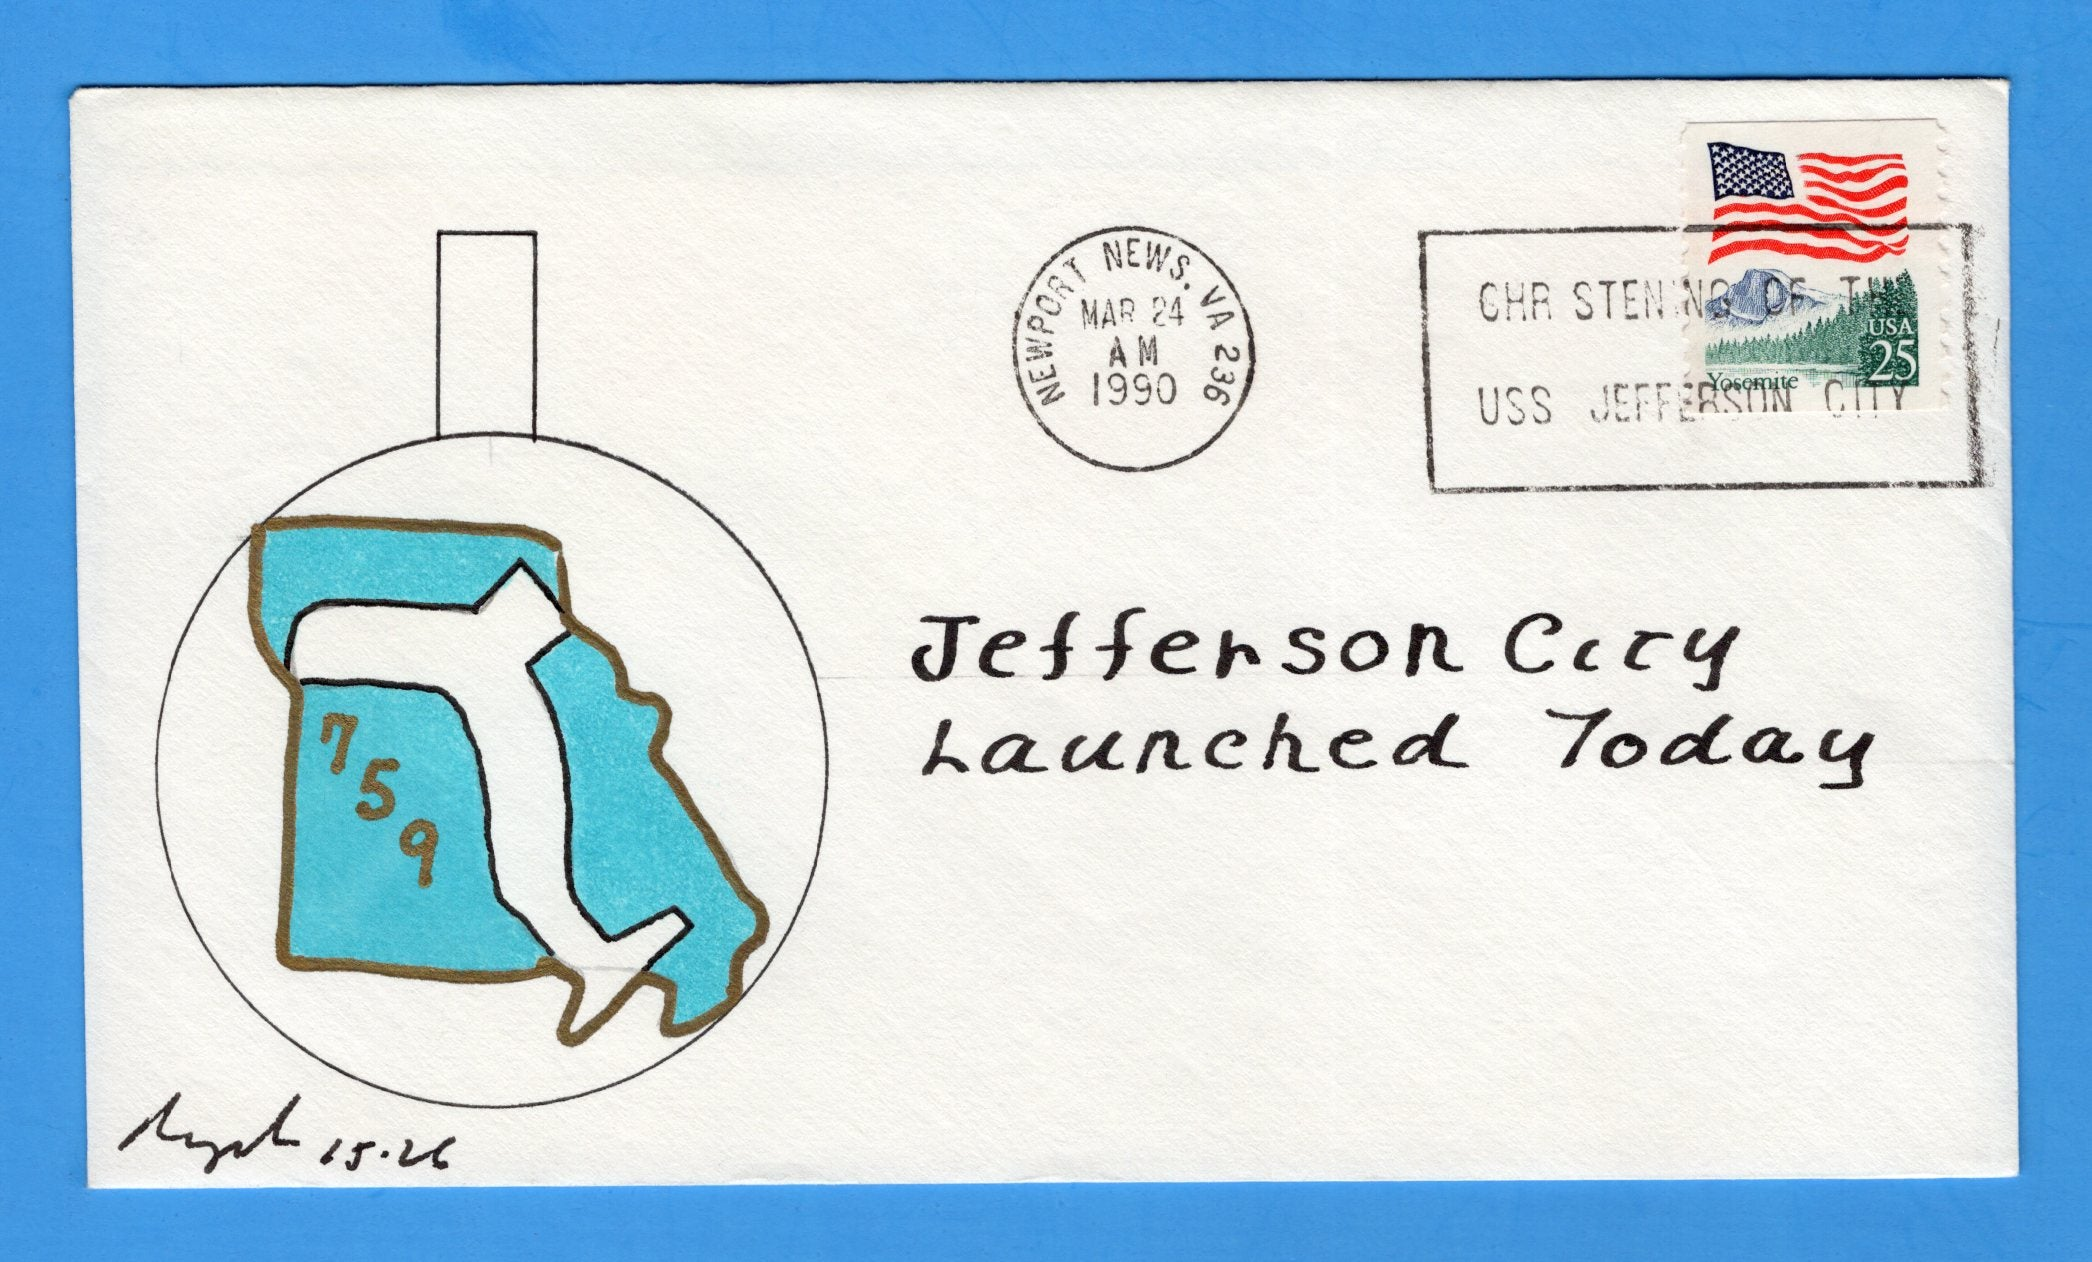 USS Jefferson City SSN-759 Launched & Christened March 24, 1990 - Rogak Cachet